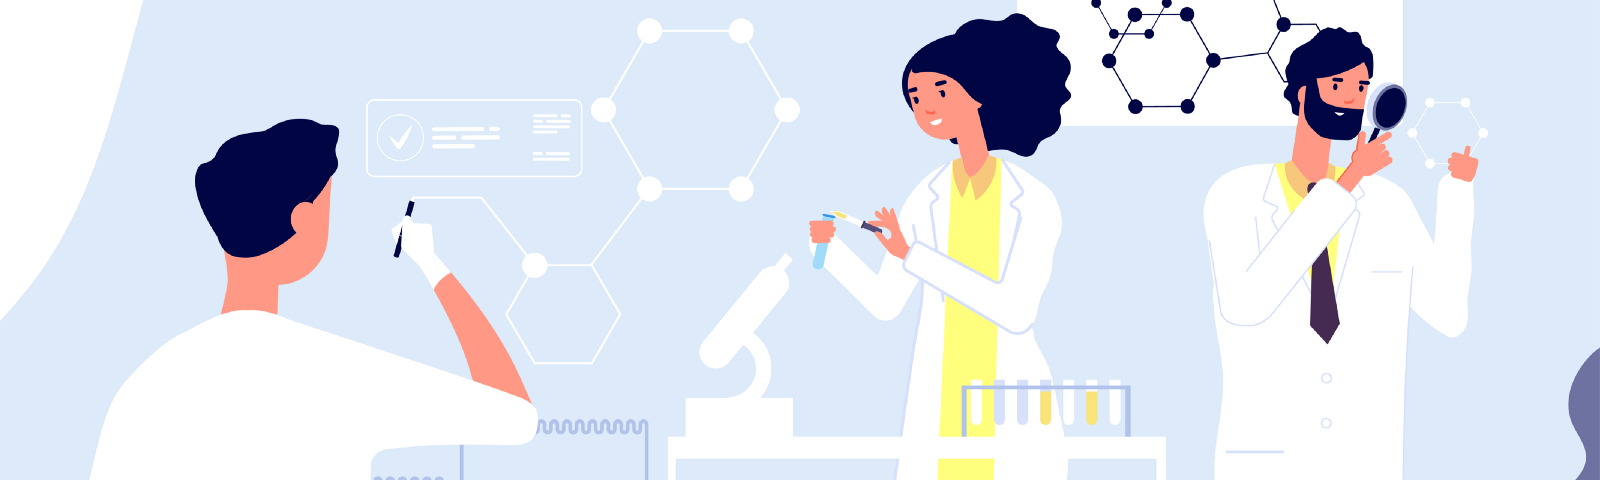 Innovating drug development with blockchain and AI